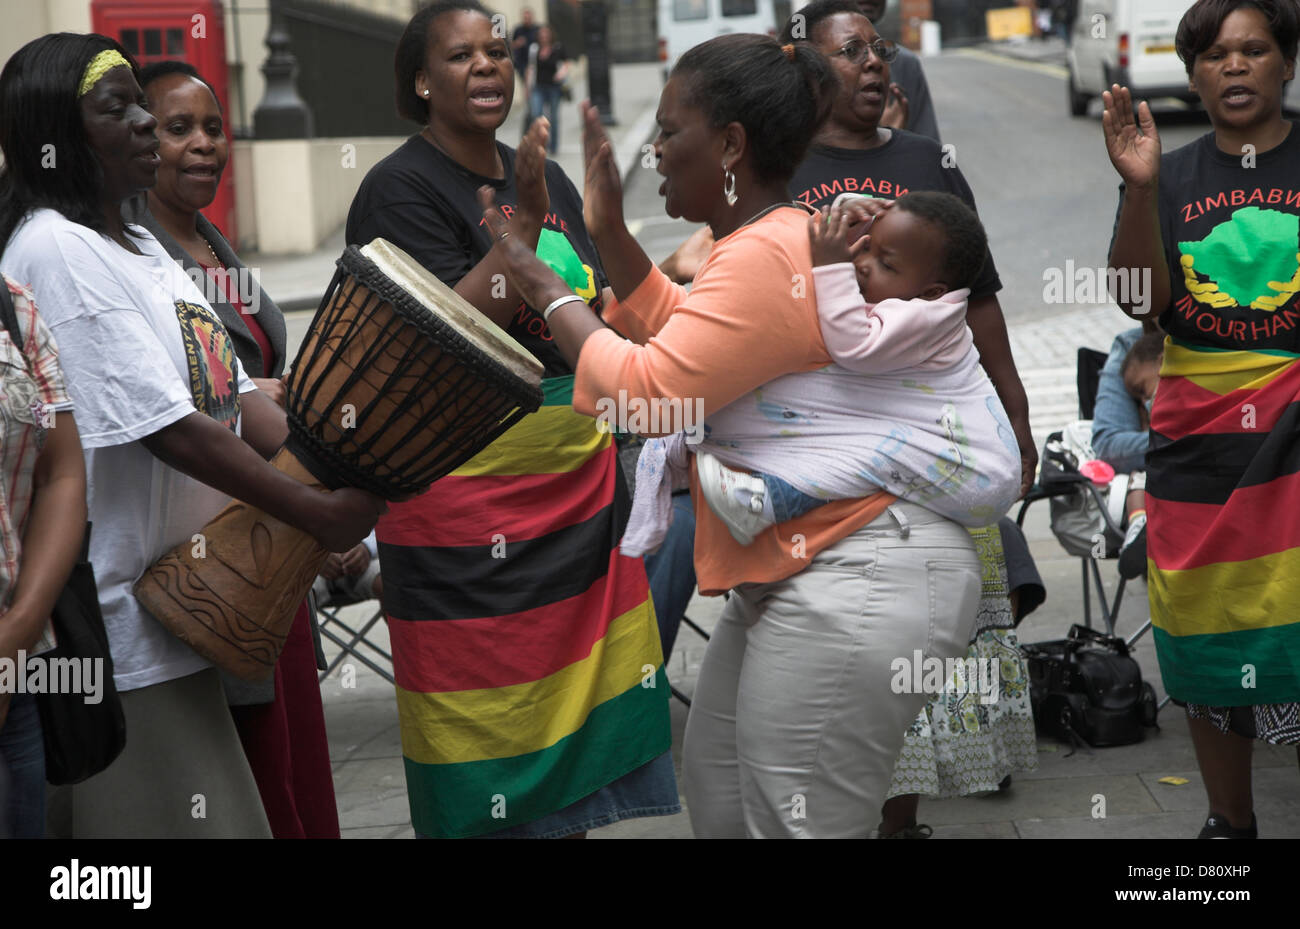 Rally in central London held by MDC every Saturday to protest against Robert Mugabe and his regime in Zimbabwe - Stock Image